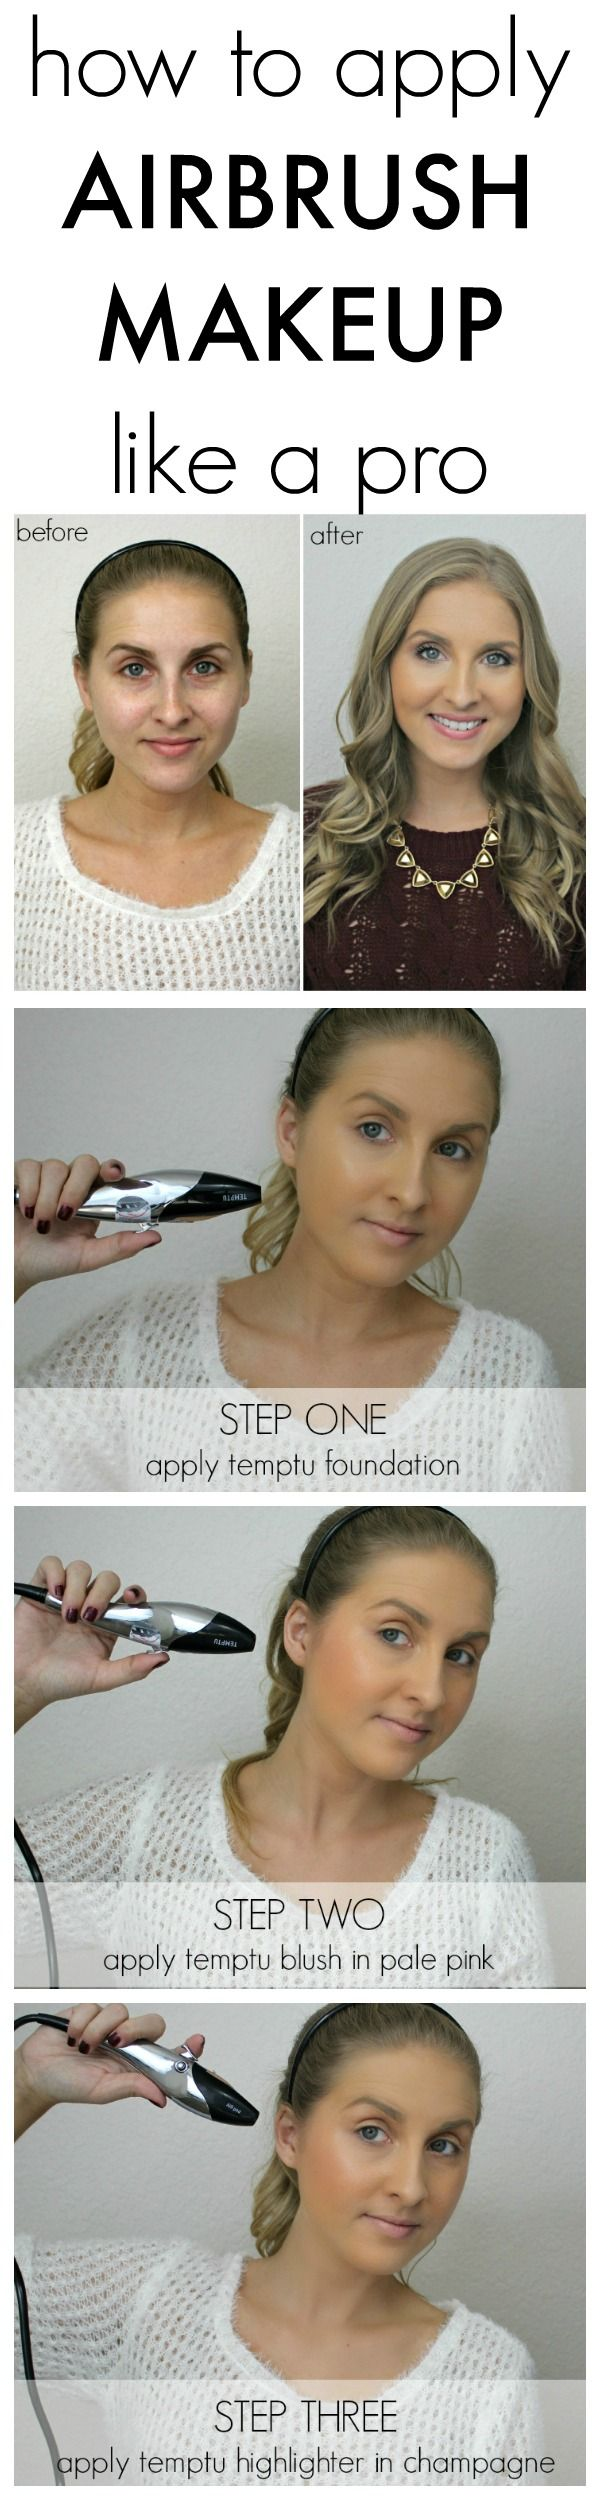 how to apply airbrush makeup like a pro with @temptu!   #TEMPTUDaynNight